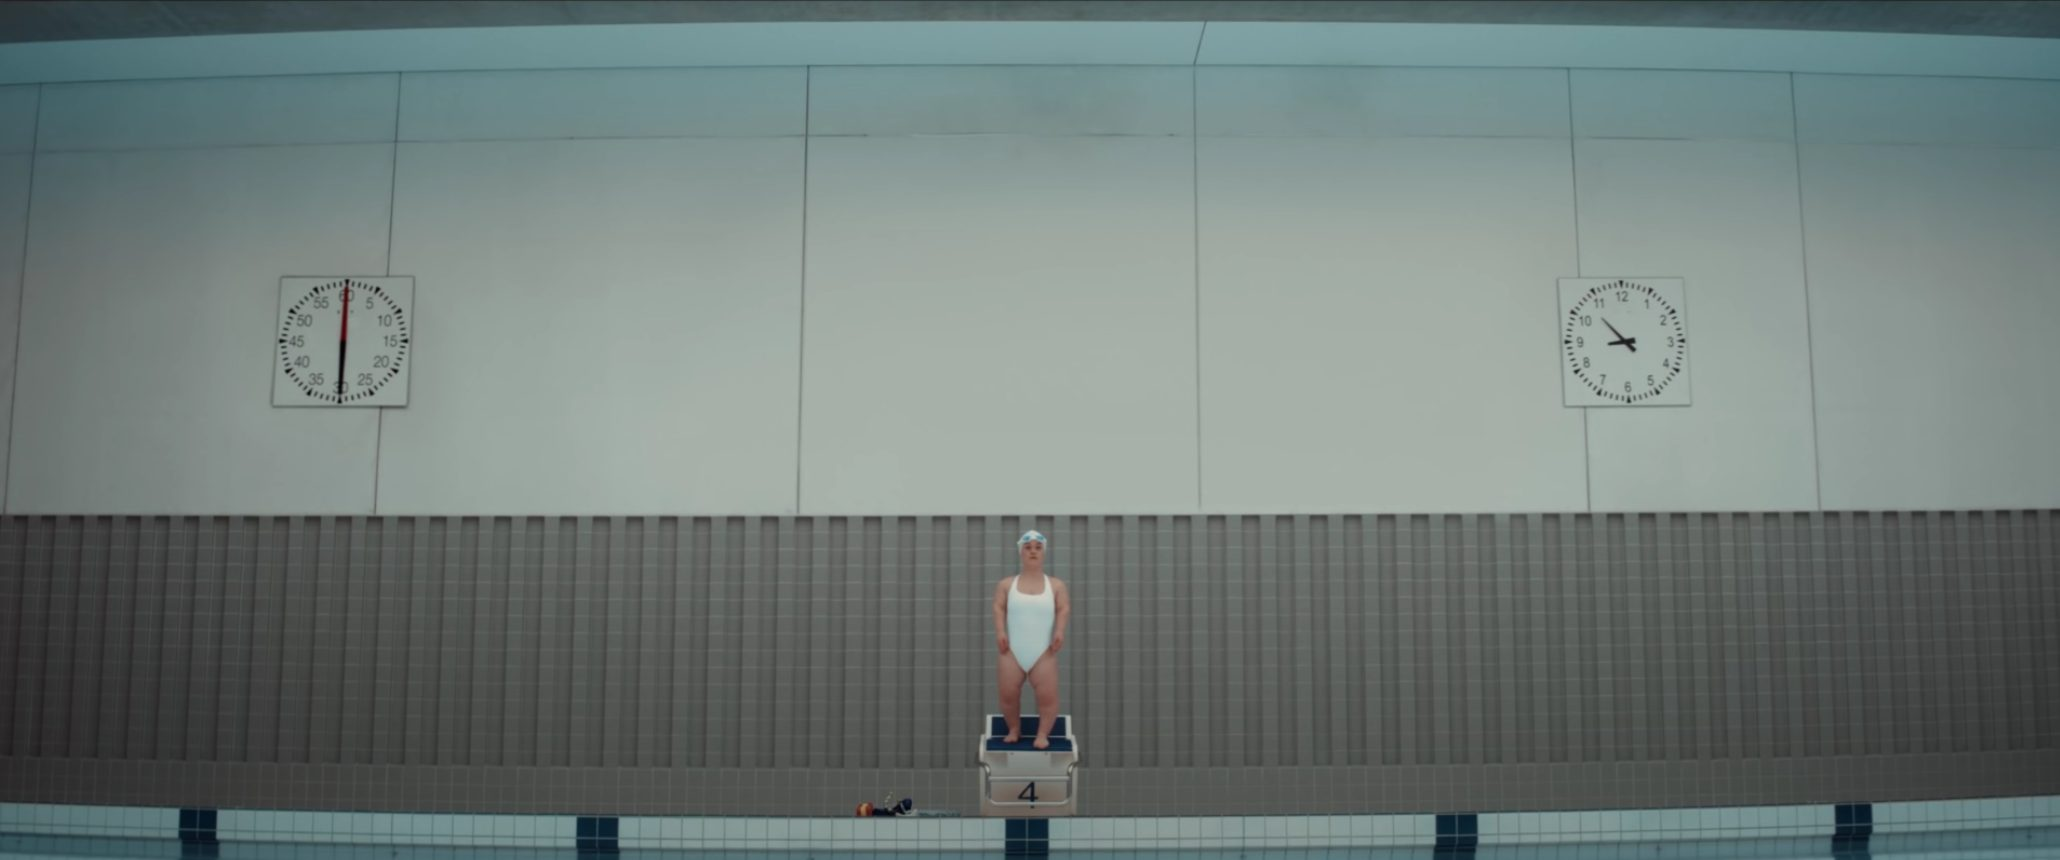 Channel 4's Incredible Paralympics Trailer Is Super Human